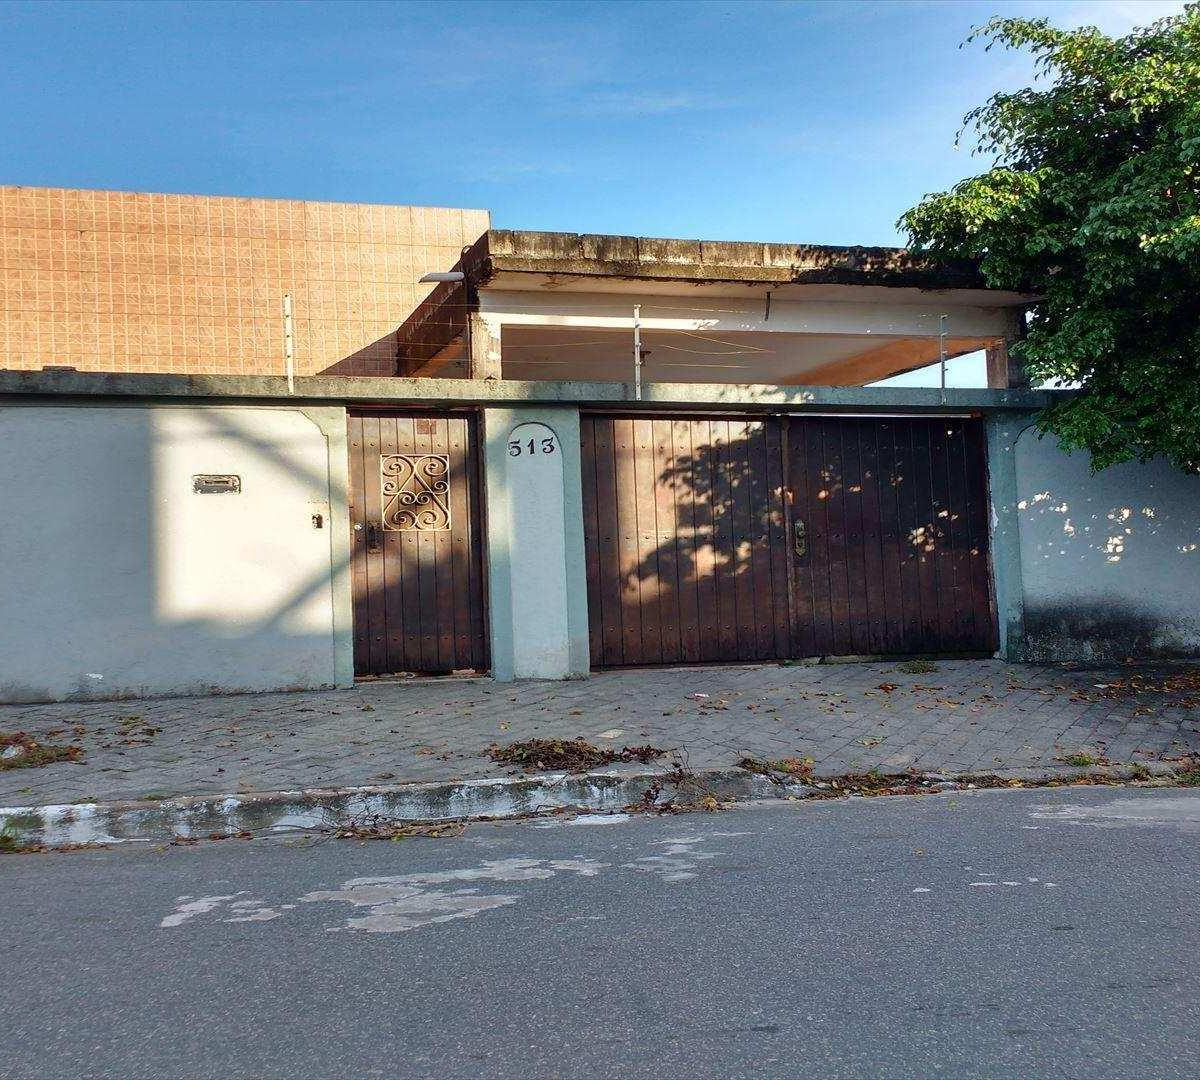 17502-01_FACHADA_DO_TERRENO_15X30